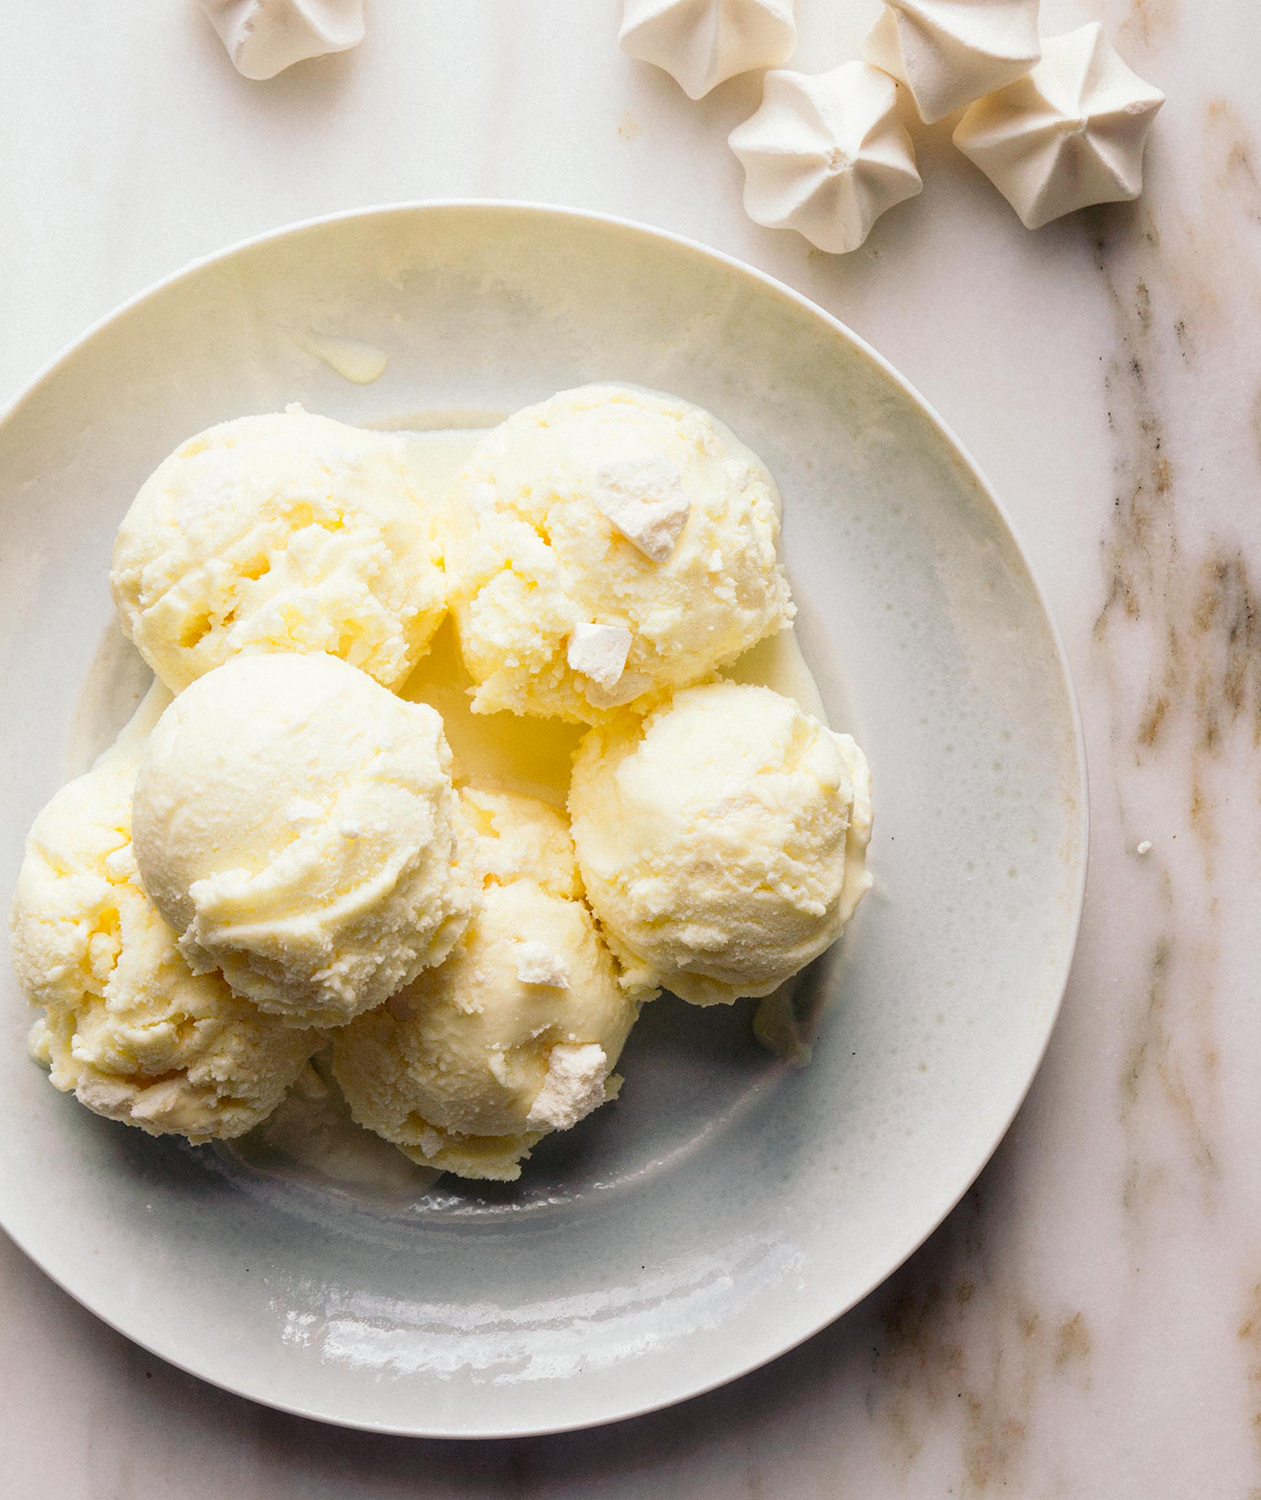 Lemon Meringue Pie Ice Cream